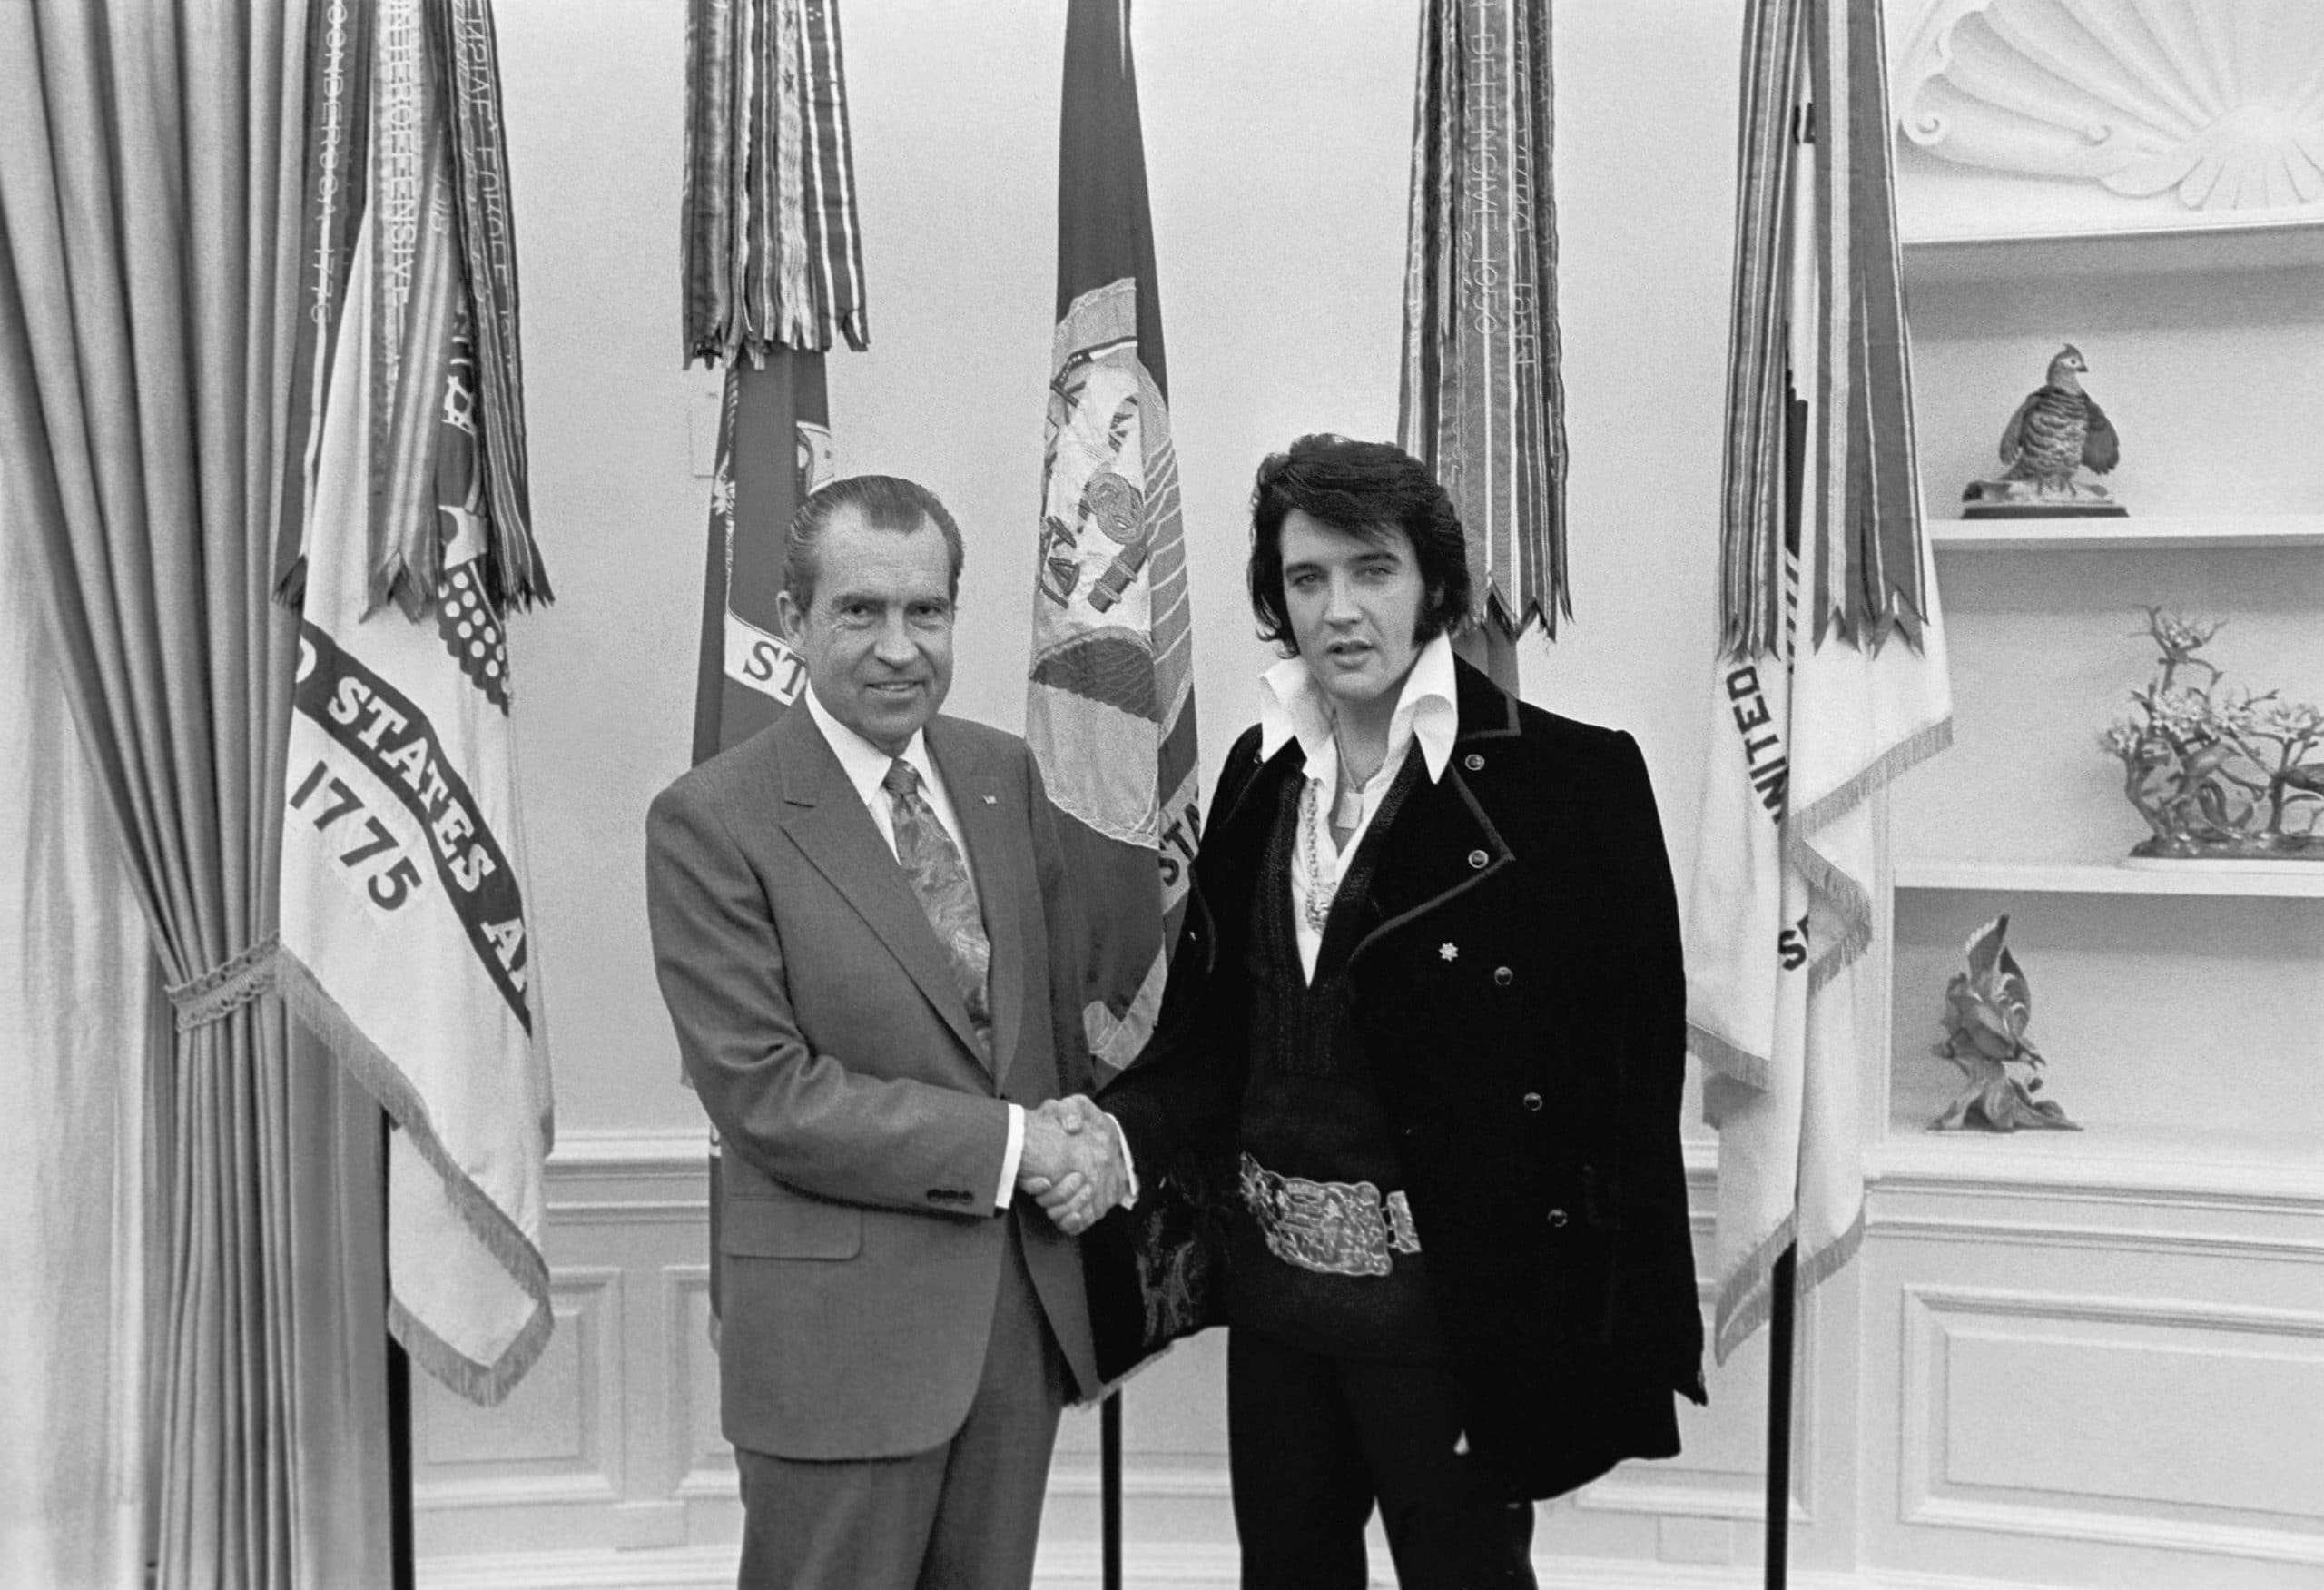 Remembering The Time Elvis Presley Called The Beatles 'Anti-American' To President Nixon